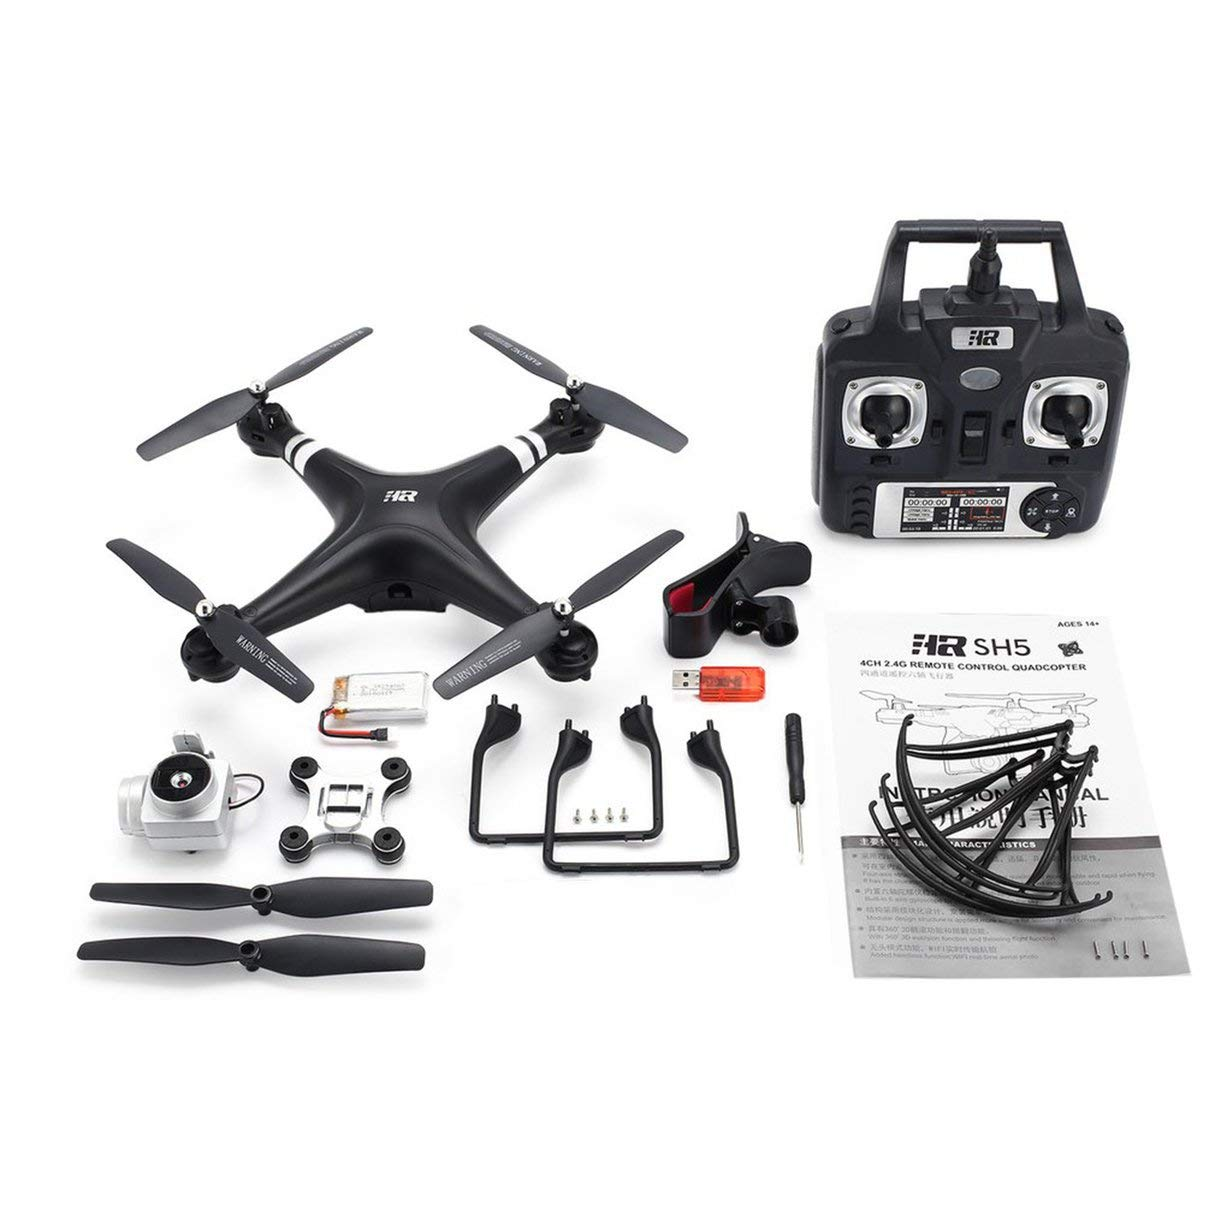 SH5H 2.4G FPV Drone RC Quadcopter with 720P WiFi Camera Live Video Height Stop Headless Mode